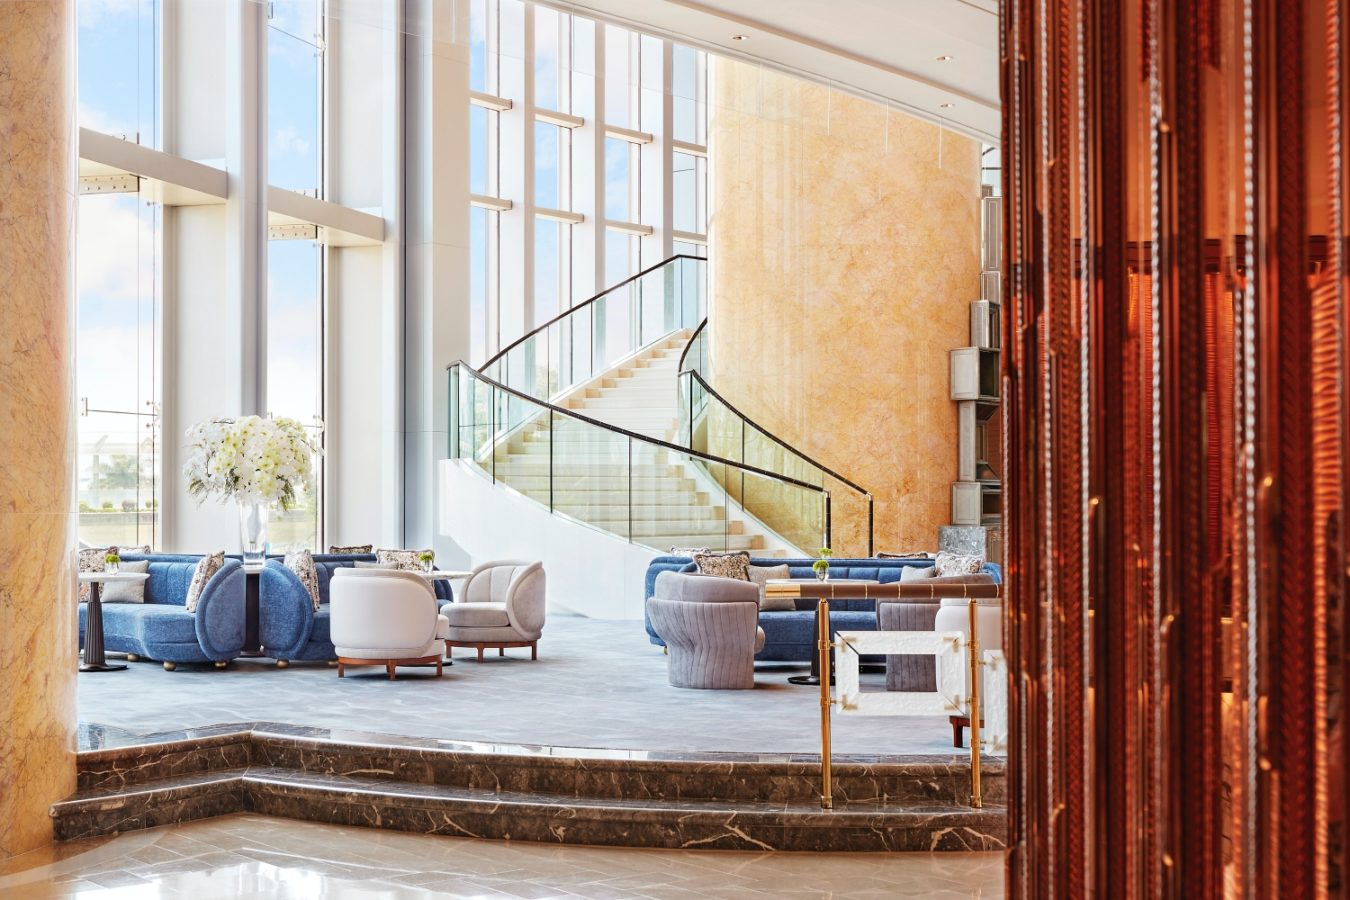 How hotels in Hong Kong are revamping in a time of crisis